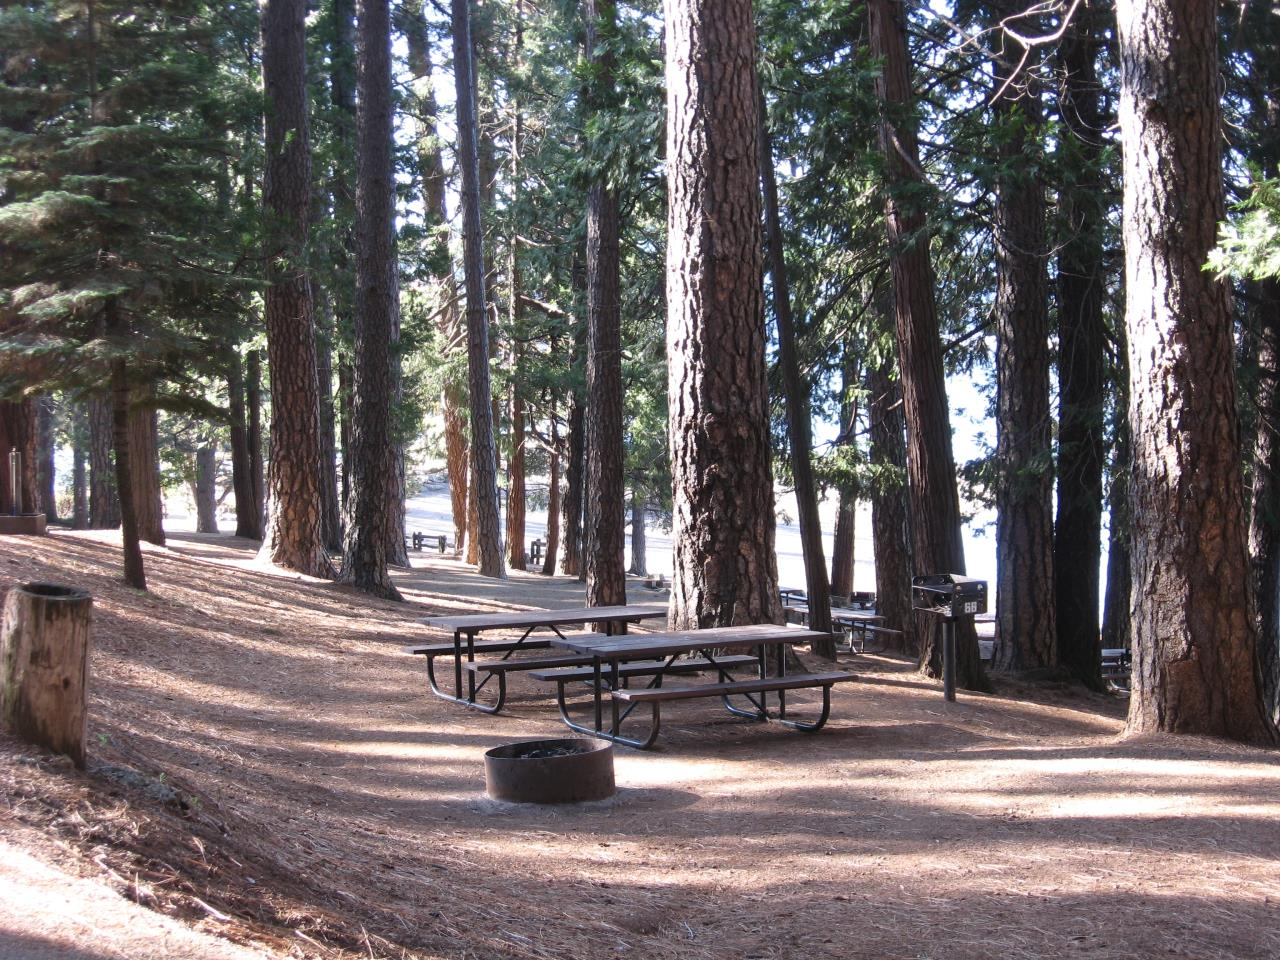 Sierra Spur site #66 - 1 vehicle, tent only - shade, gentle slope